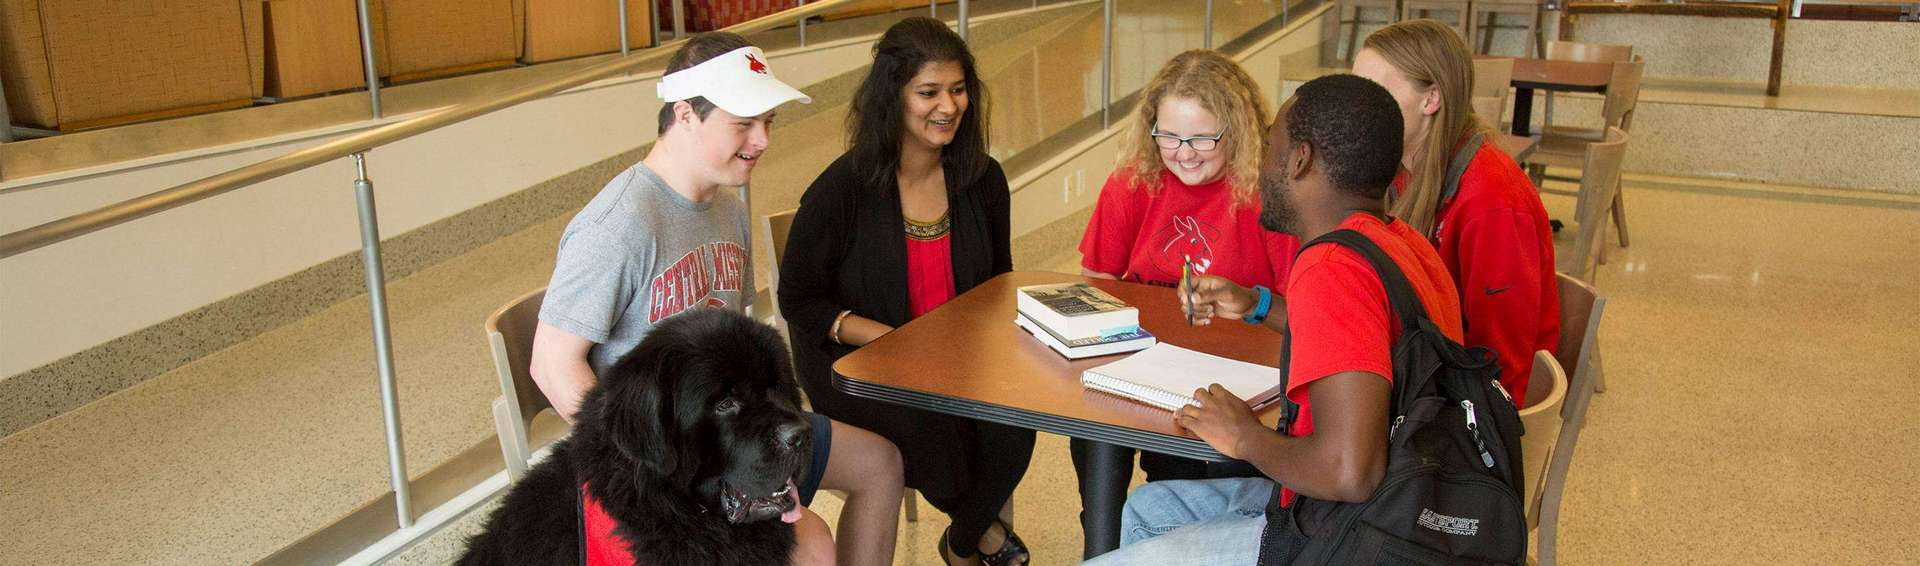 several students sitting at a dining table enjoying a conversation with a black therapy dog sitting next to the table